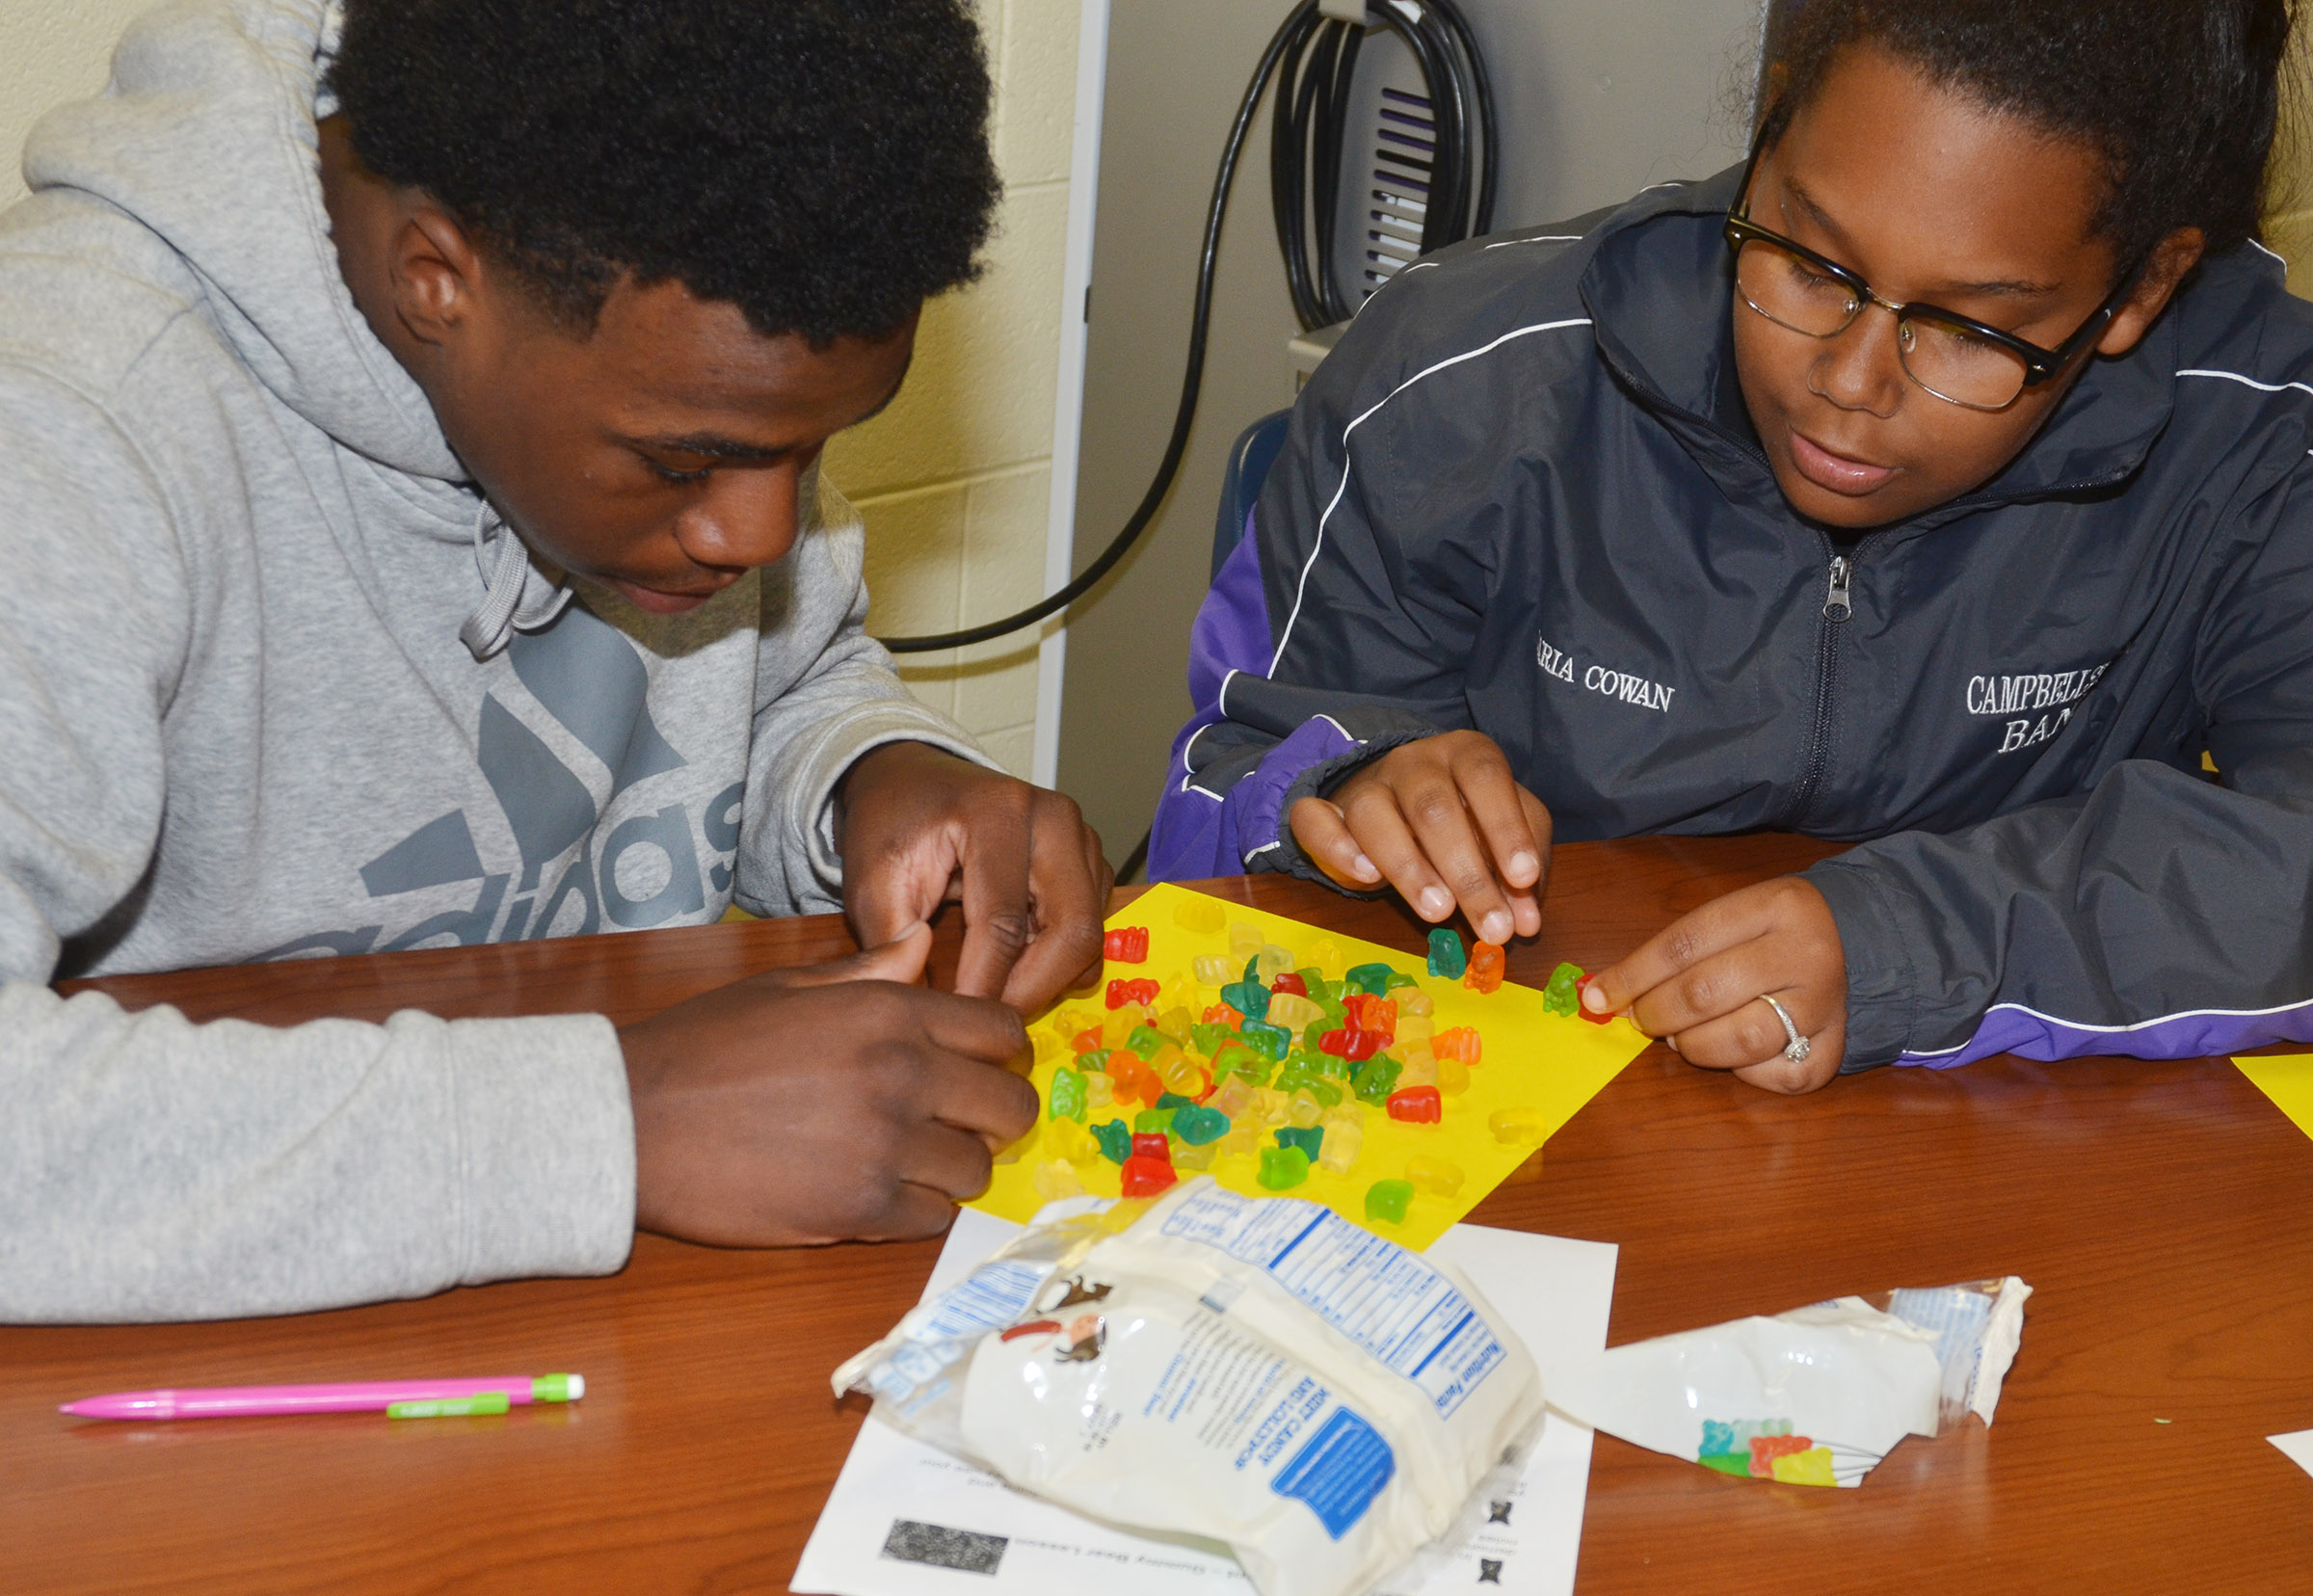 CHS sophomores Malachi Corley, at left, and Zaria Cowan build their gummy bear government model.